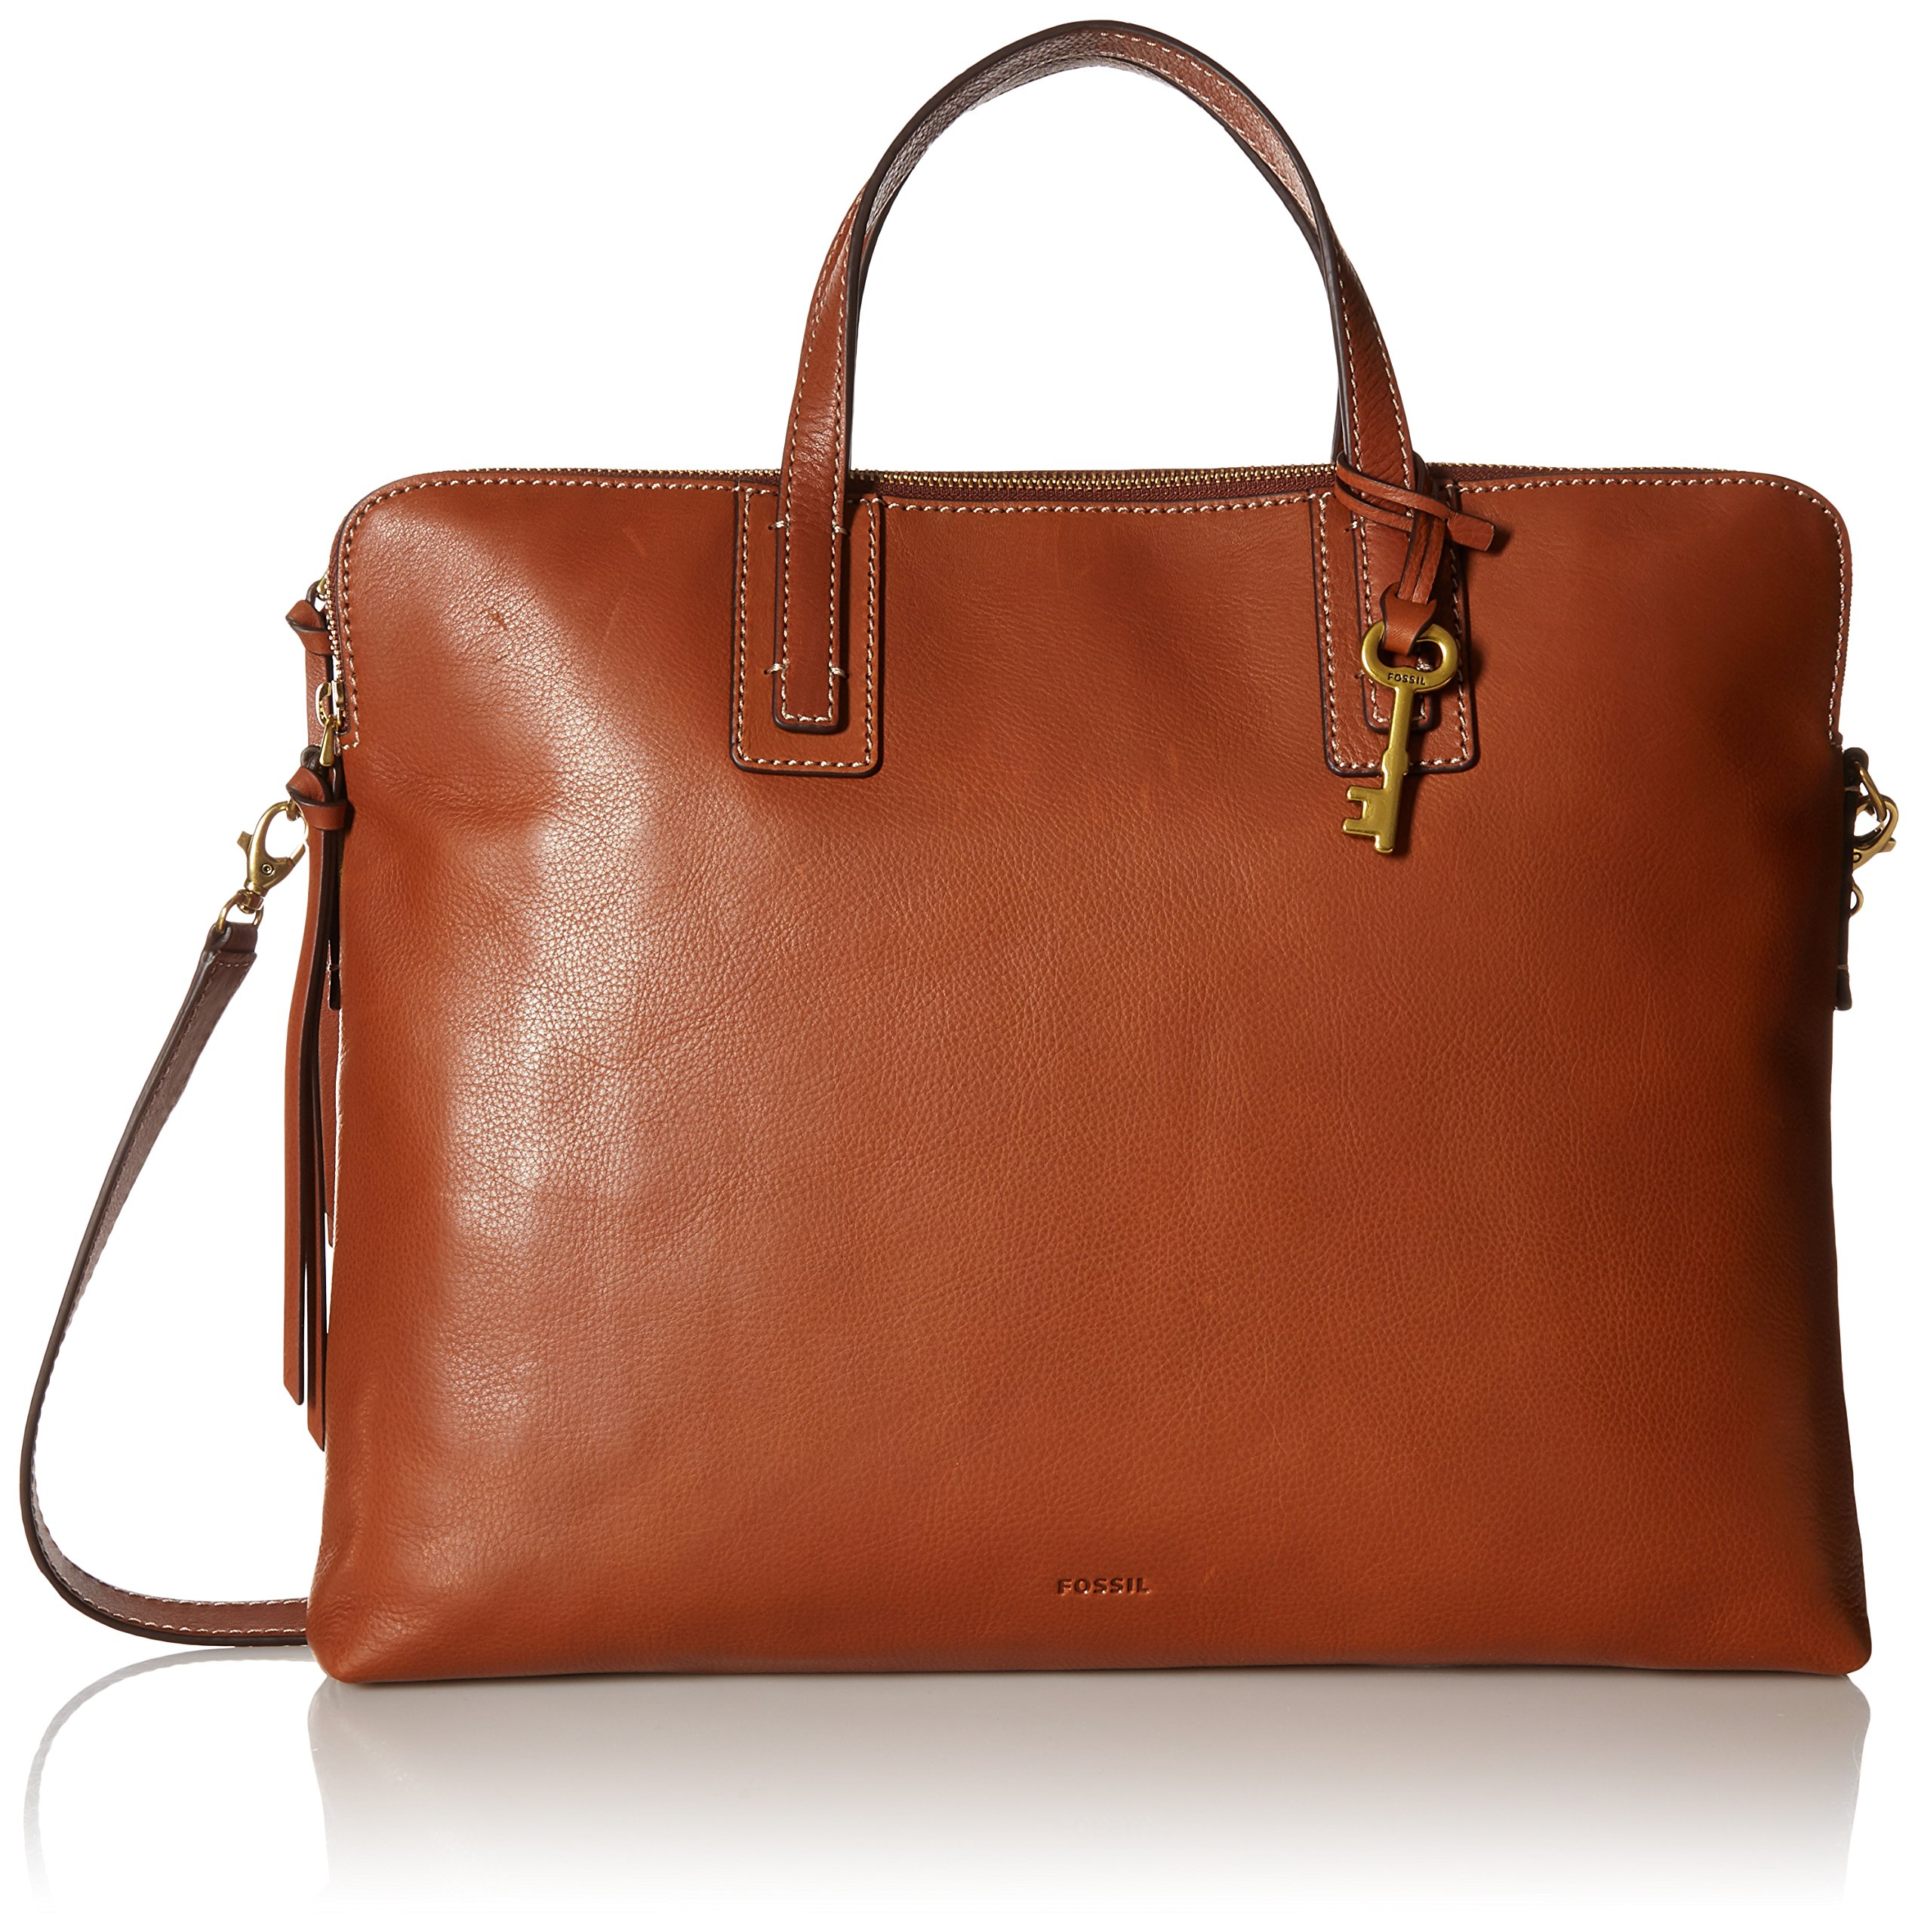 Fossil Emma Laptop Bag, Brown, One Size